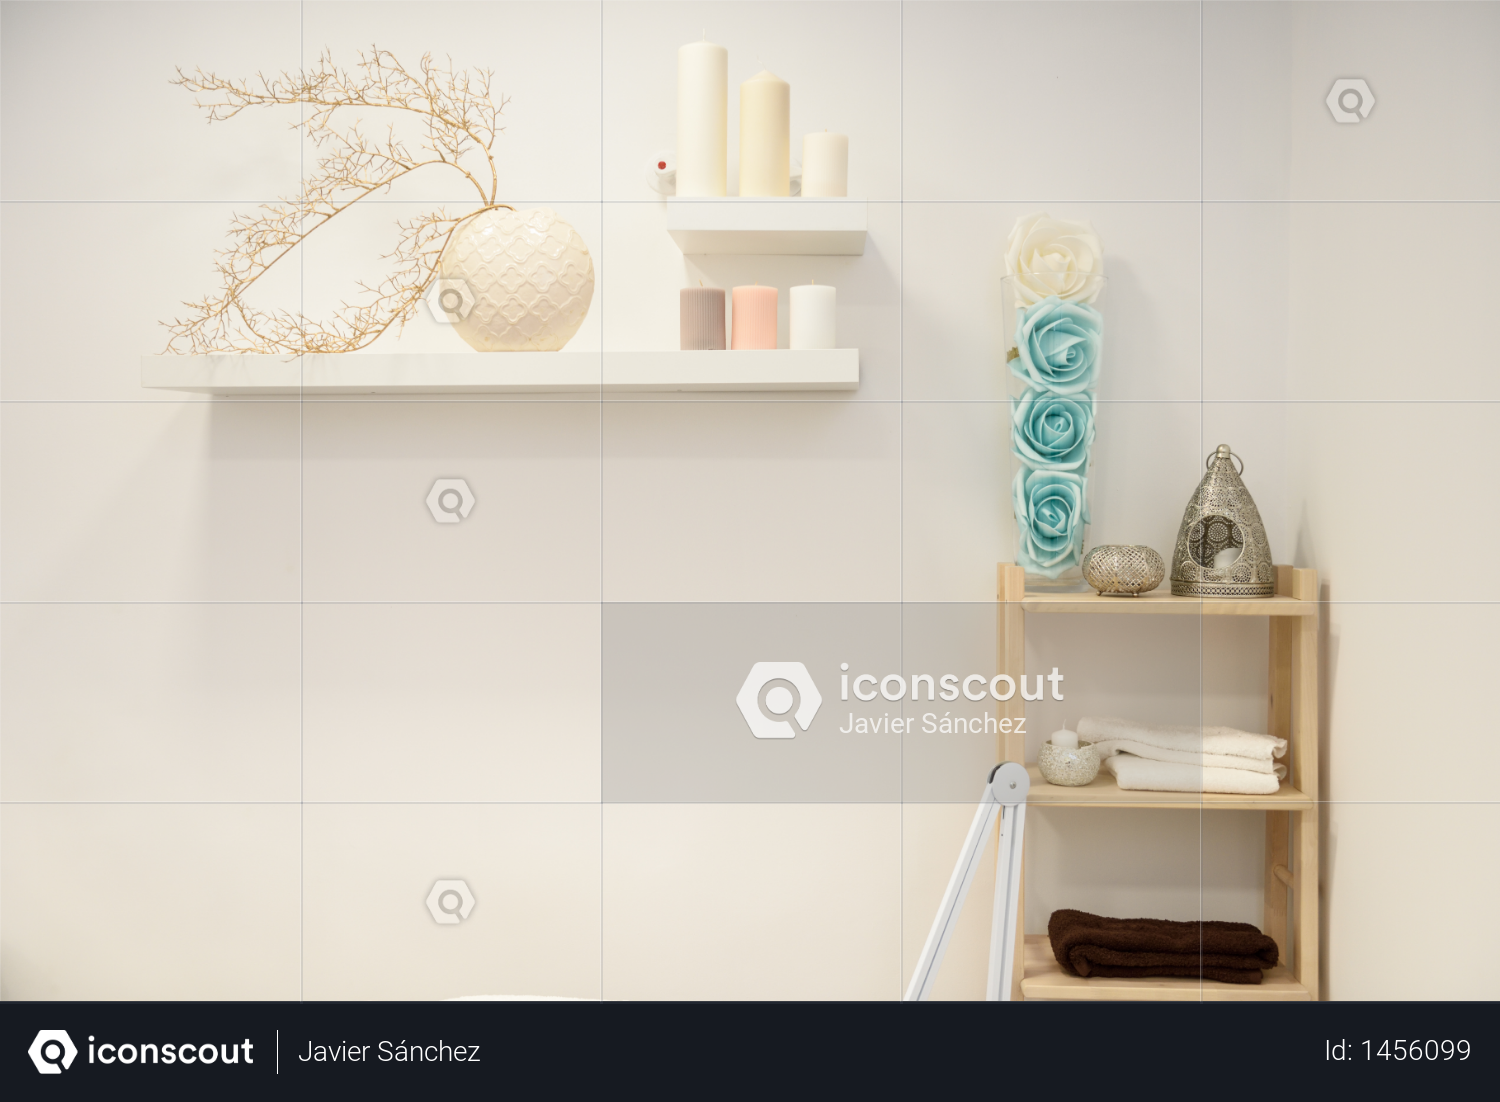 Decoration details in modern wellness center with flower vase and candles. Beauty and Aesthetic concepts. Photo